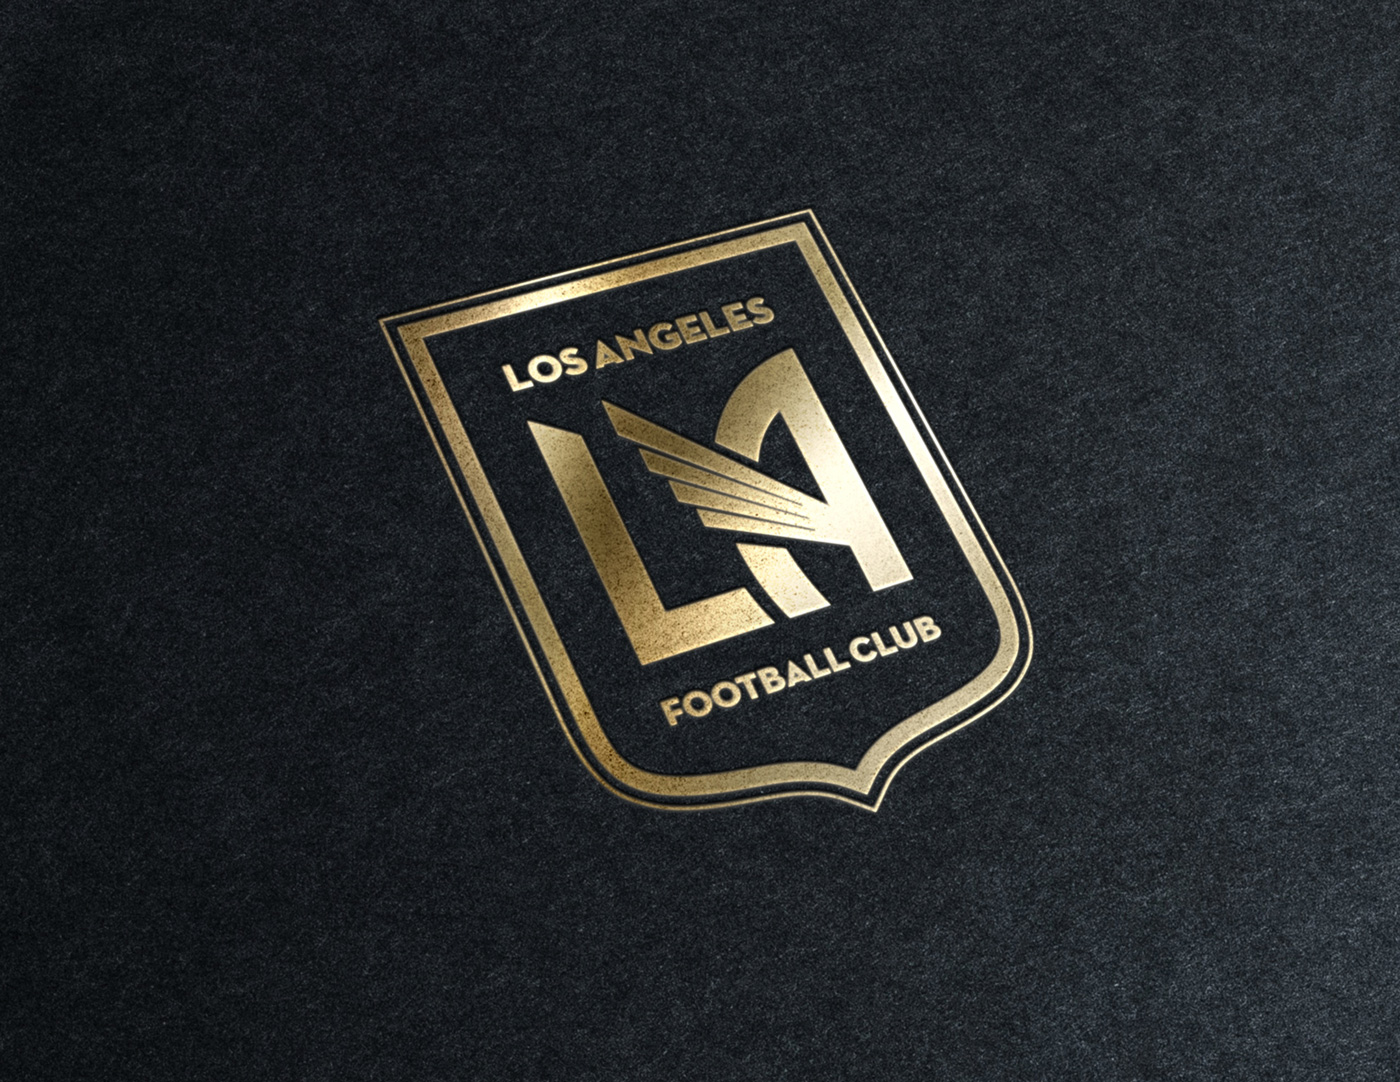 LAFC Crest, LAFC Badge, LAFC Logo, Matthew Wolff Design, Soccer, Football, Crest, Badge, Logo, Los Angeles FC, Club, Los Angeles Football Club, MLS, Artist, Graphic Designer, Branding